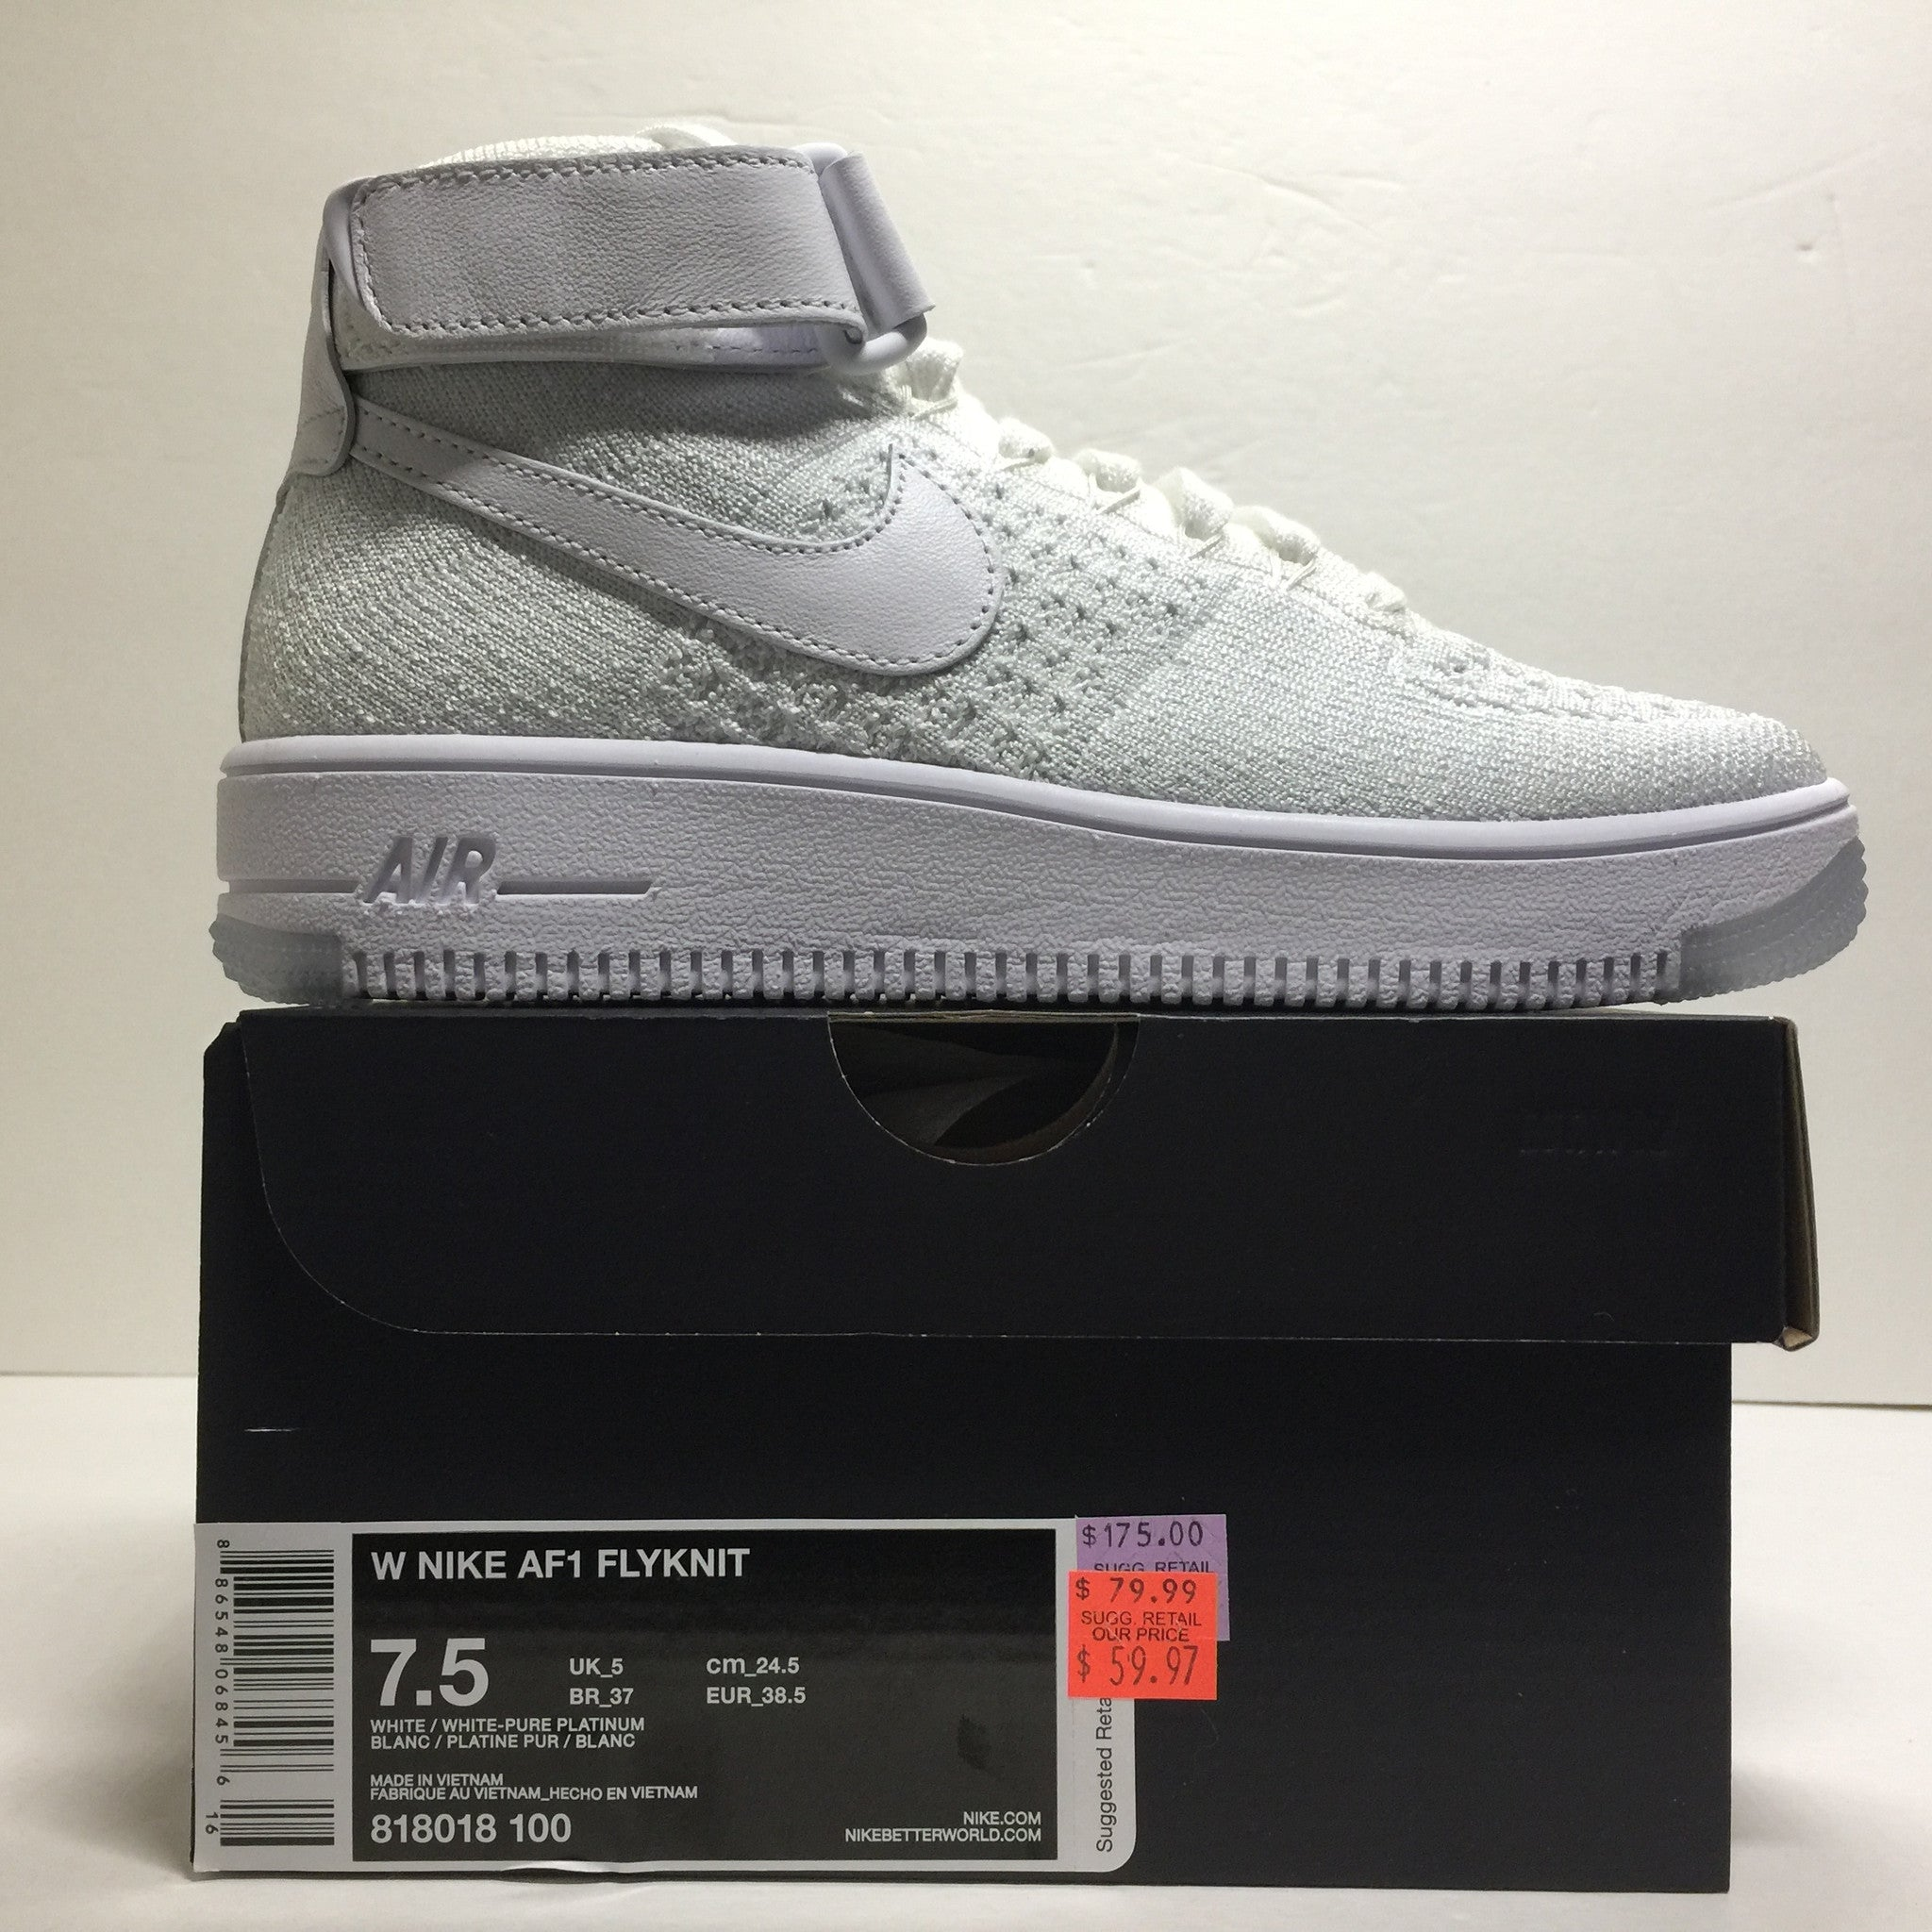 DS W Nike Air Force 1 Flyknit High White Size 6/6.5/Size 7.5 - DOPEFOOT  - 4